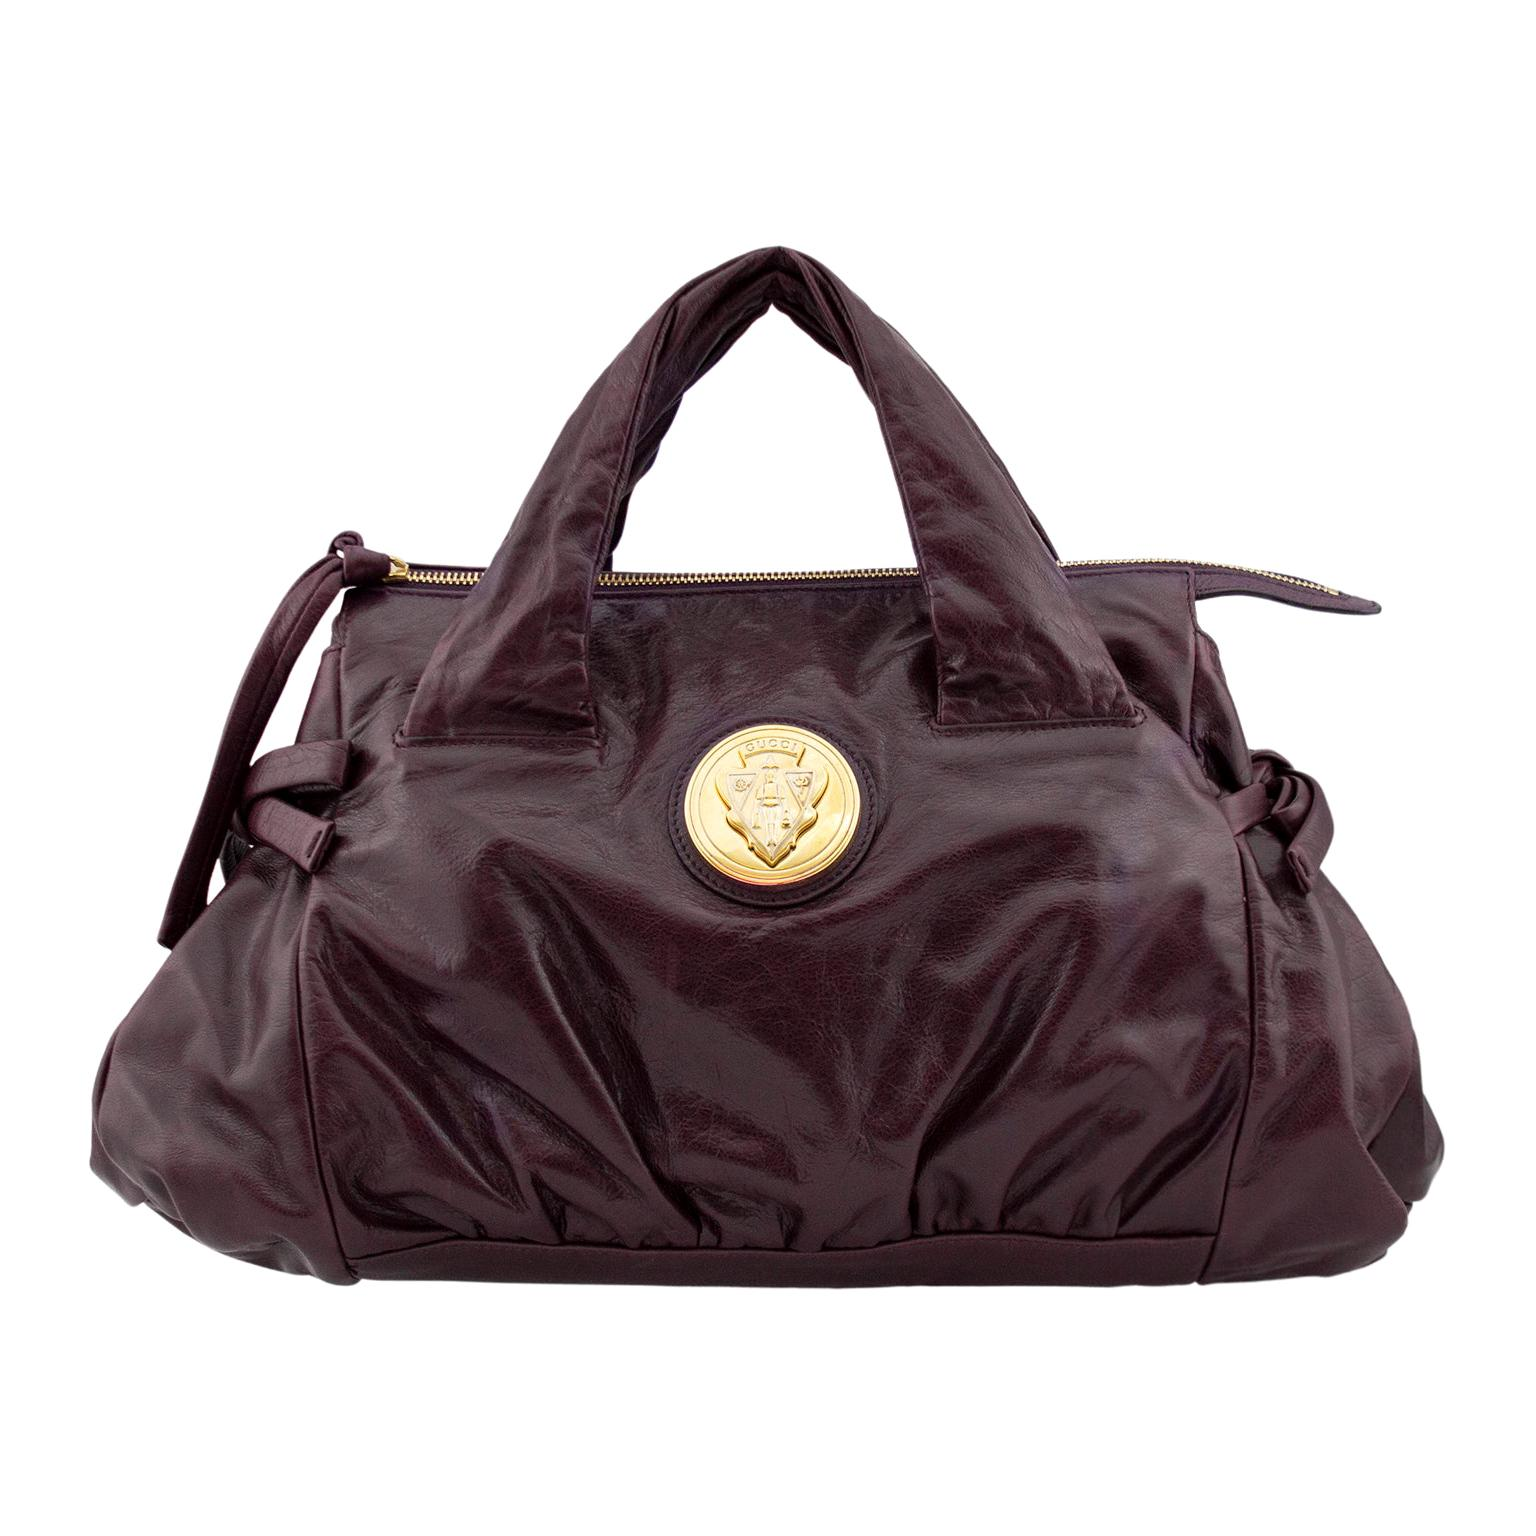 2000s Gucci Hysteria Collection Maroon Leather Bag